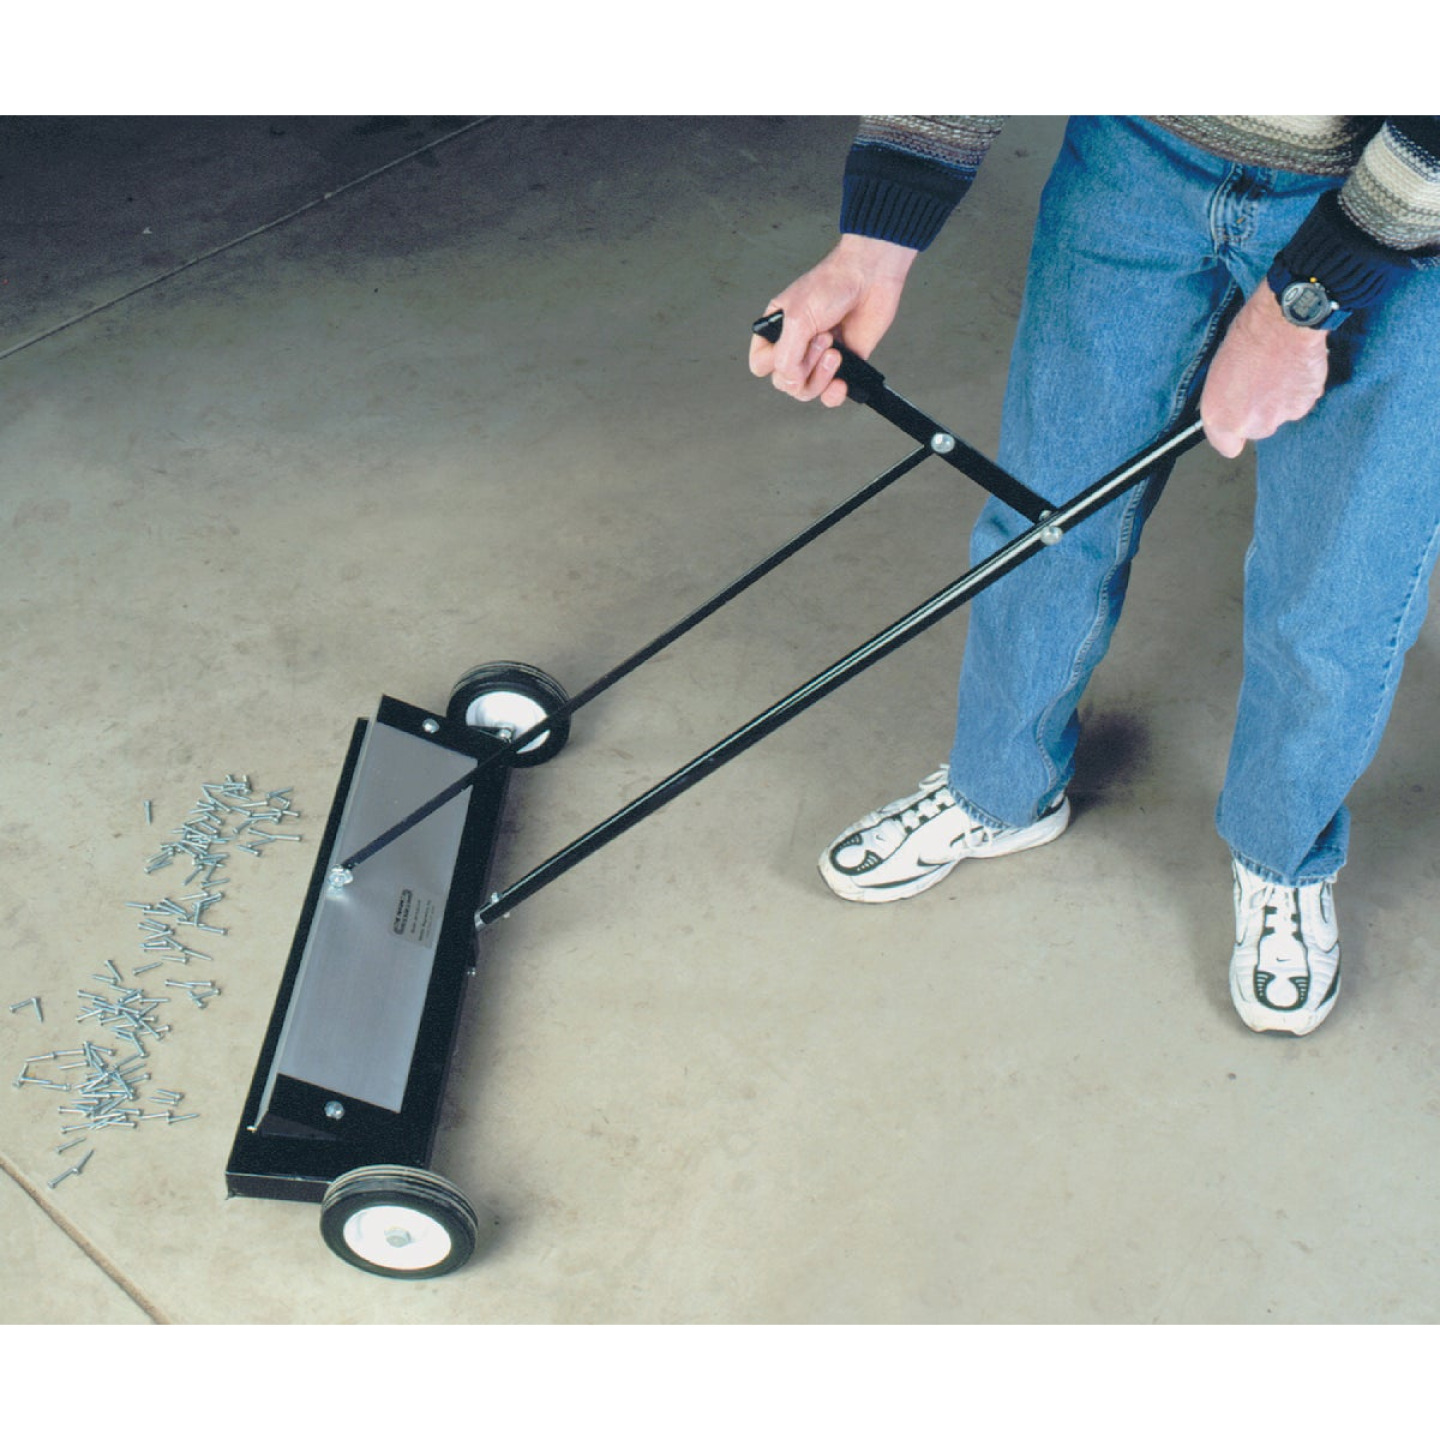 Master Magnetics 24 in. Magnetic Floor Sweeper Image 2